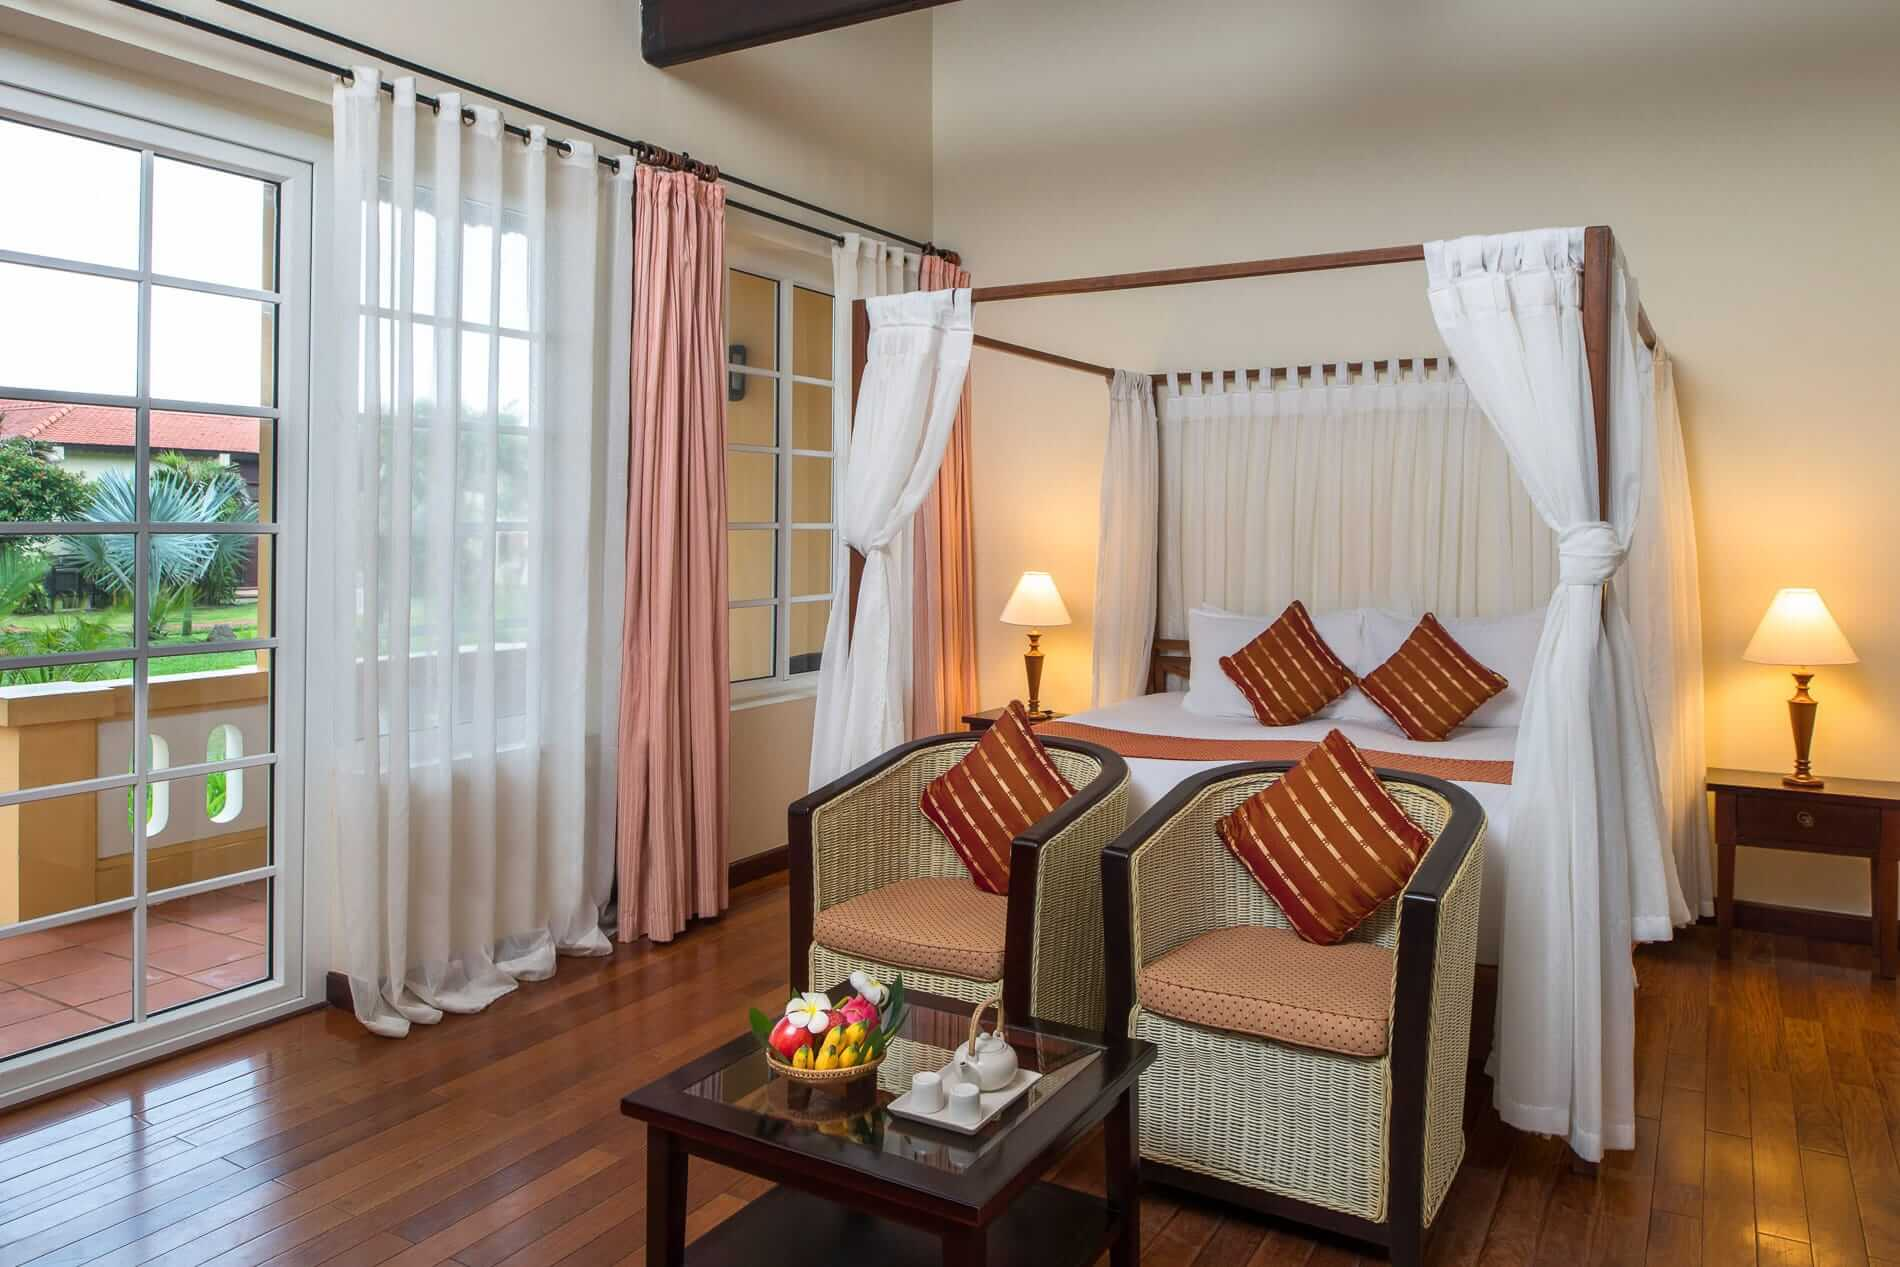 Junior Suite at Victoria Resort Hoi An